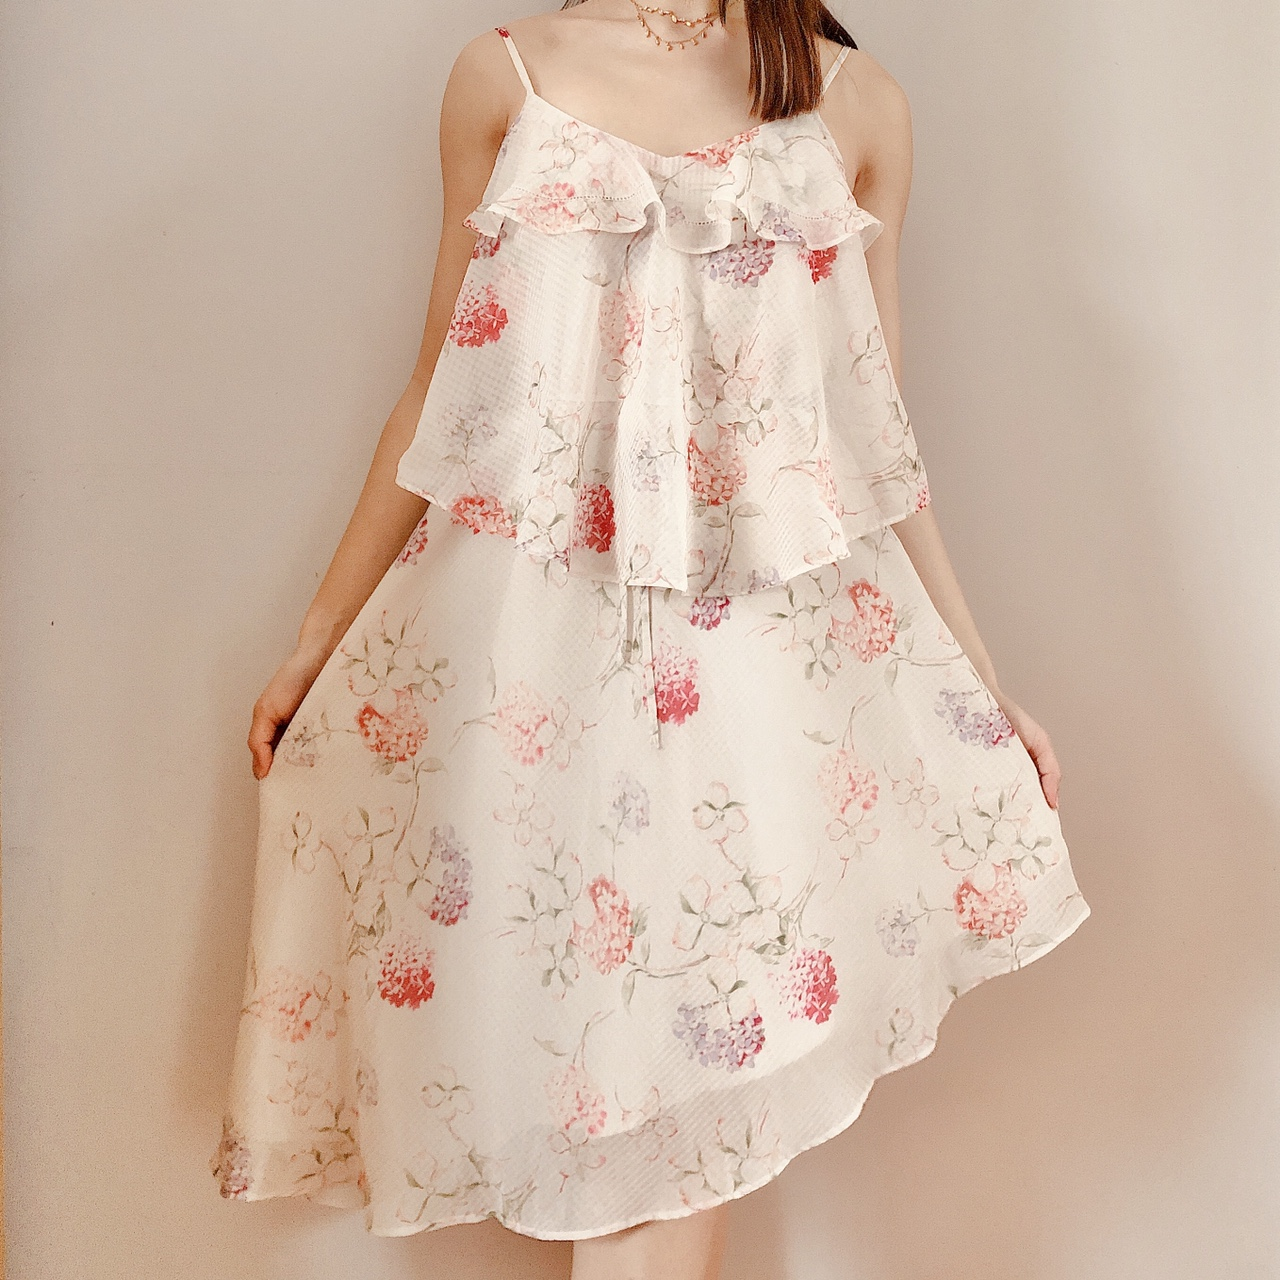 Floral Midi High-Low Dress ✨ Color is like an